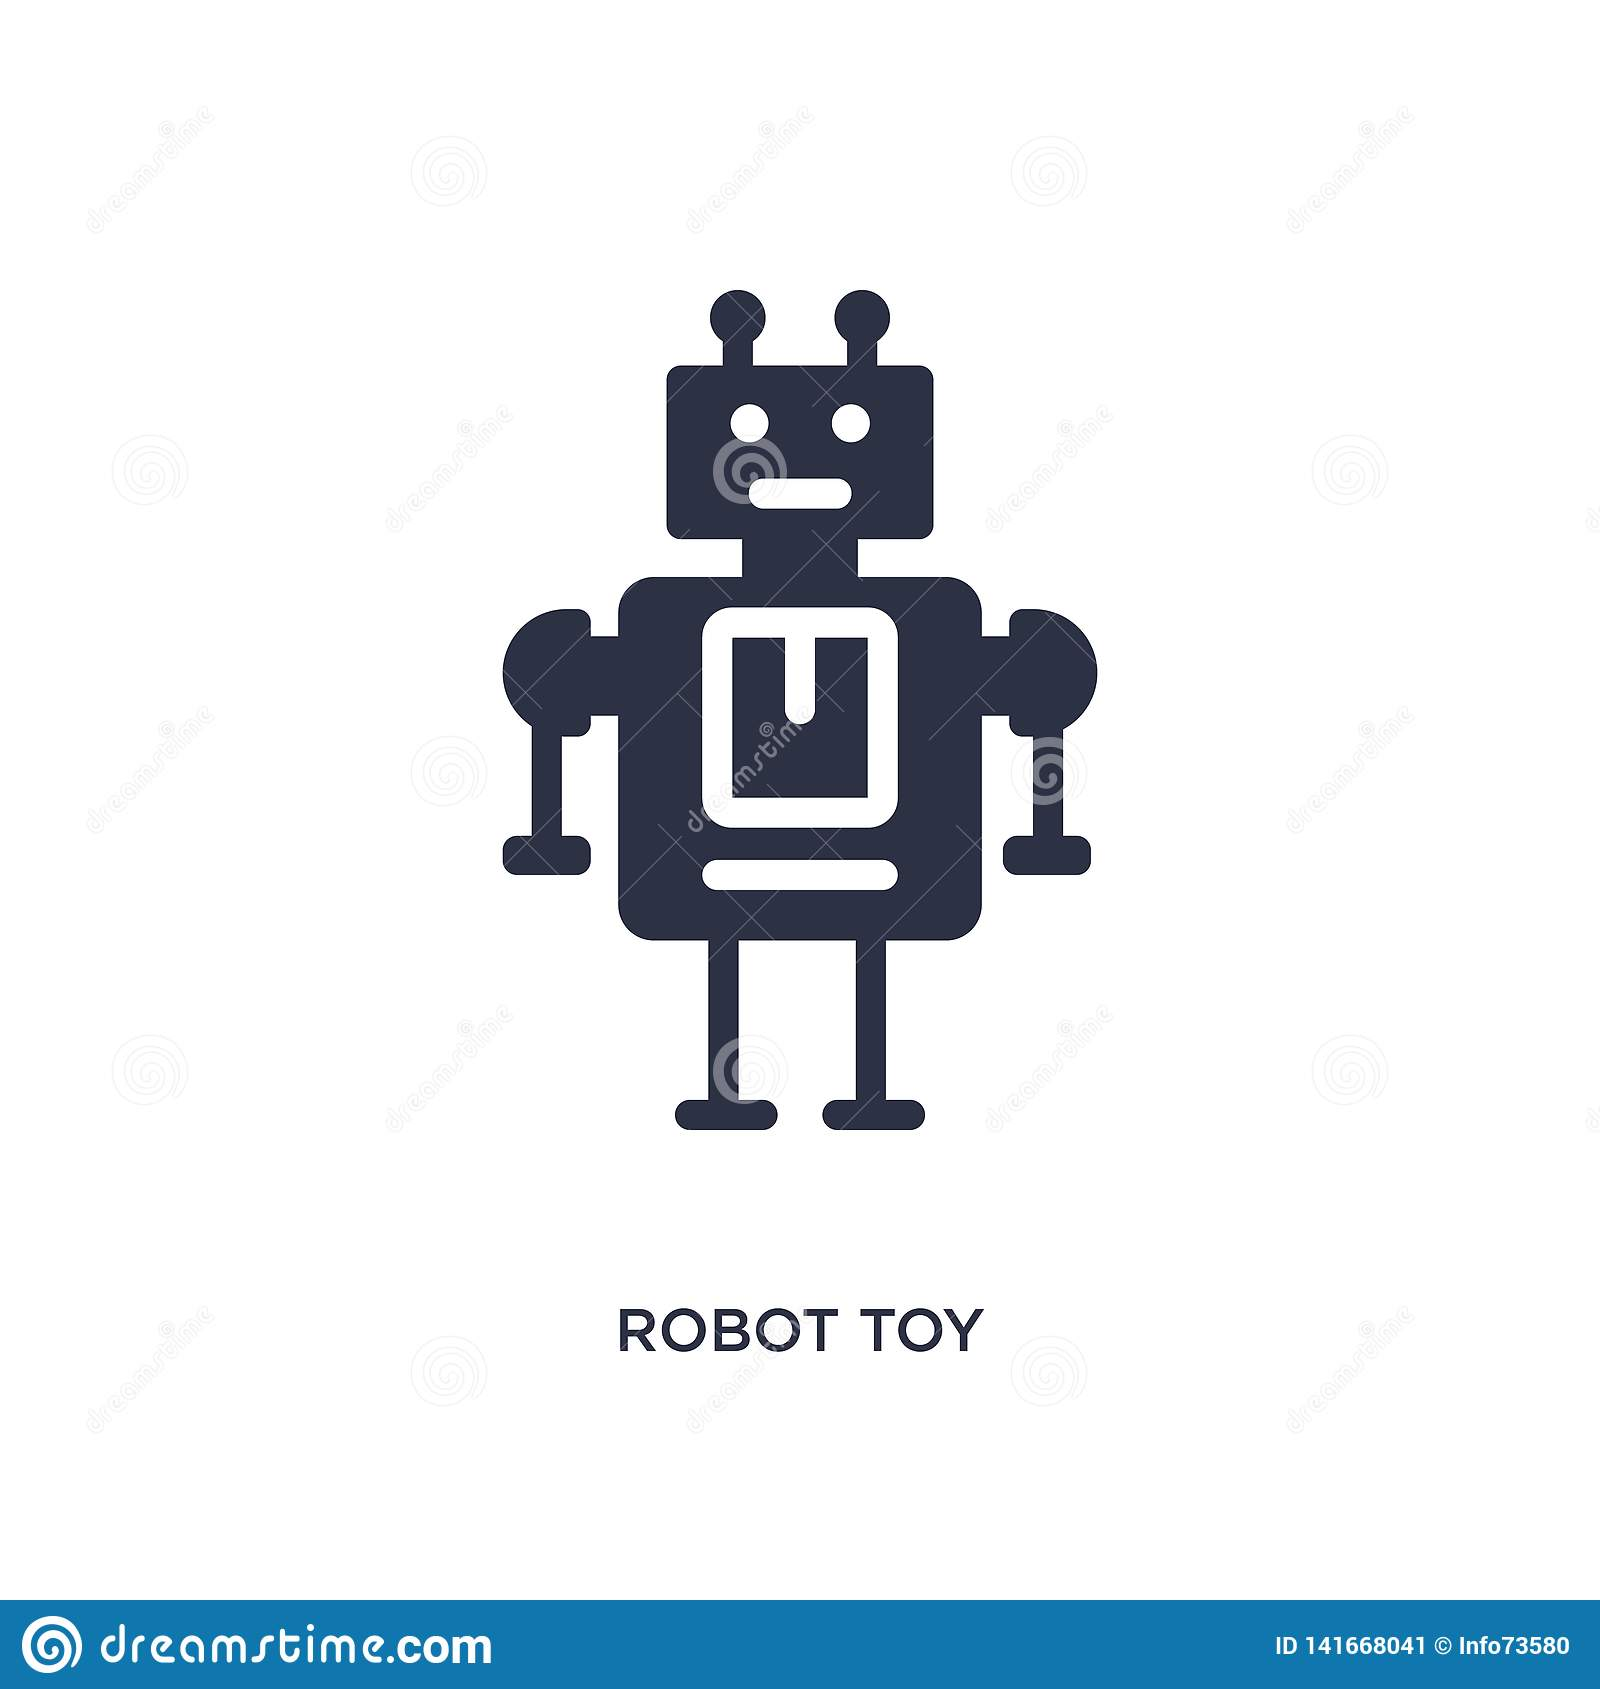 robot toy icon on white background. Simple element illustration from toys concept